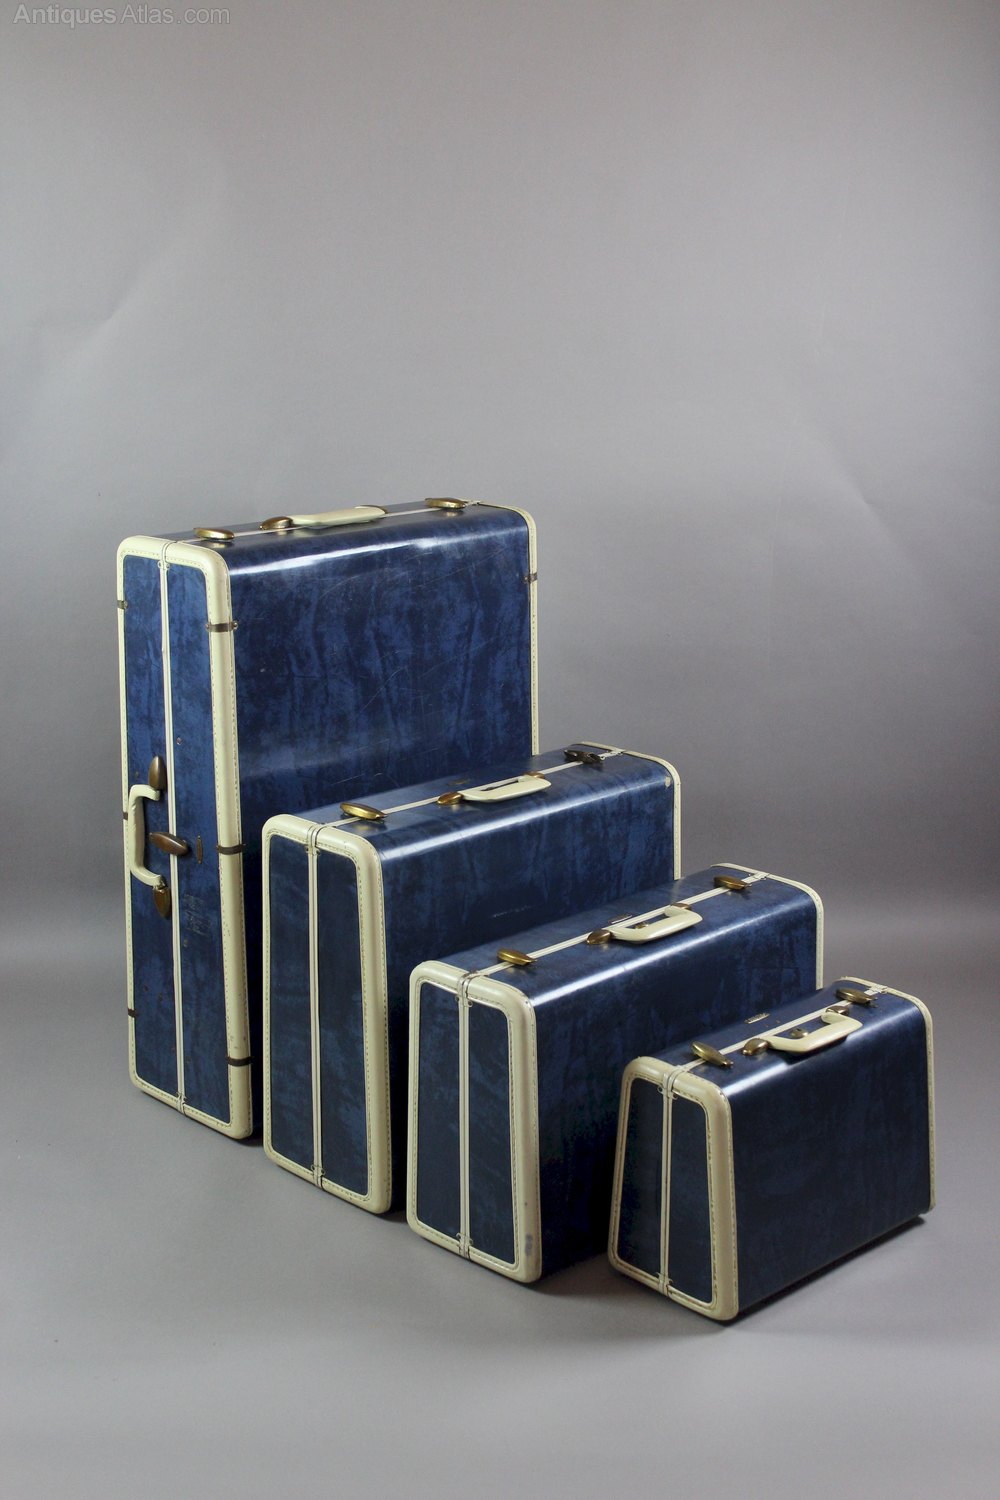 The Collector s Ultimate Guide to Luggage - Vintage Suitcases